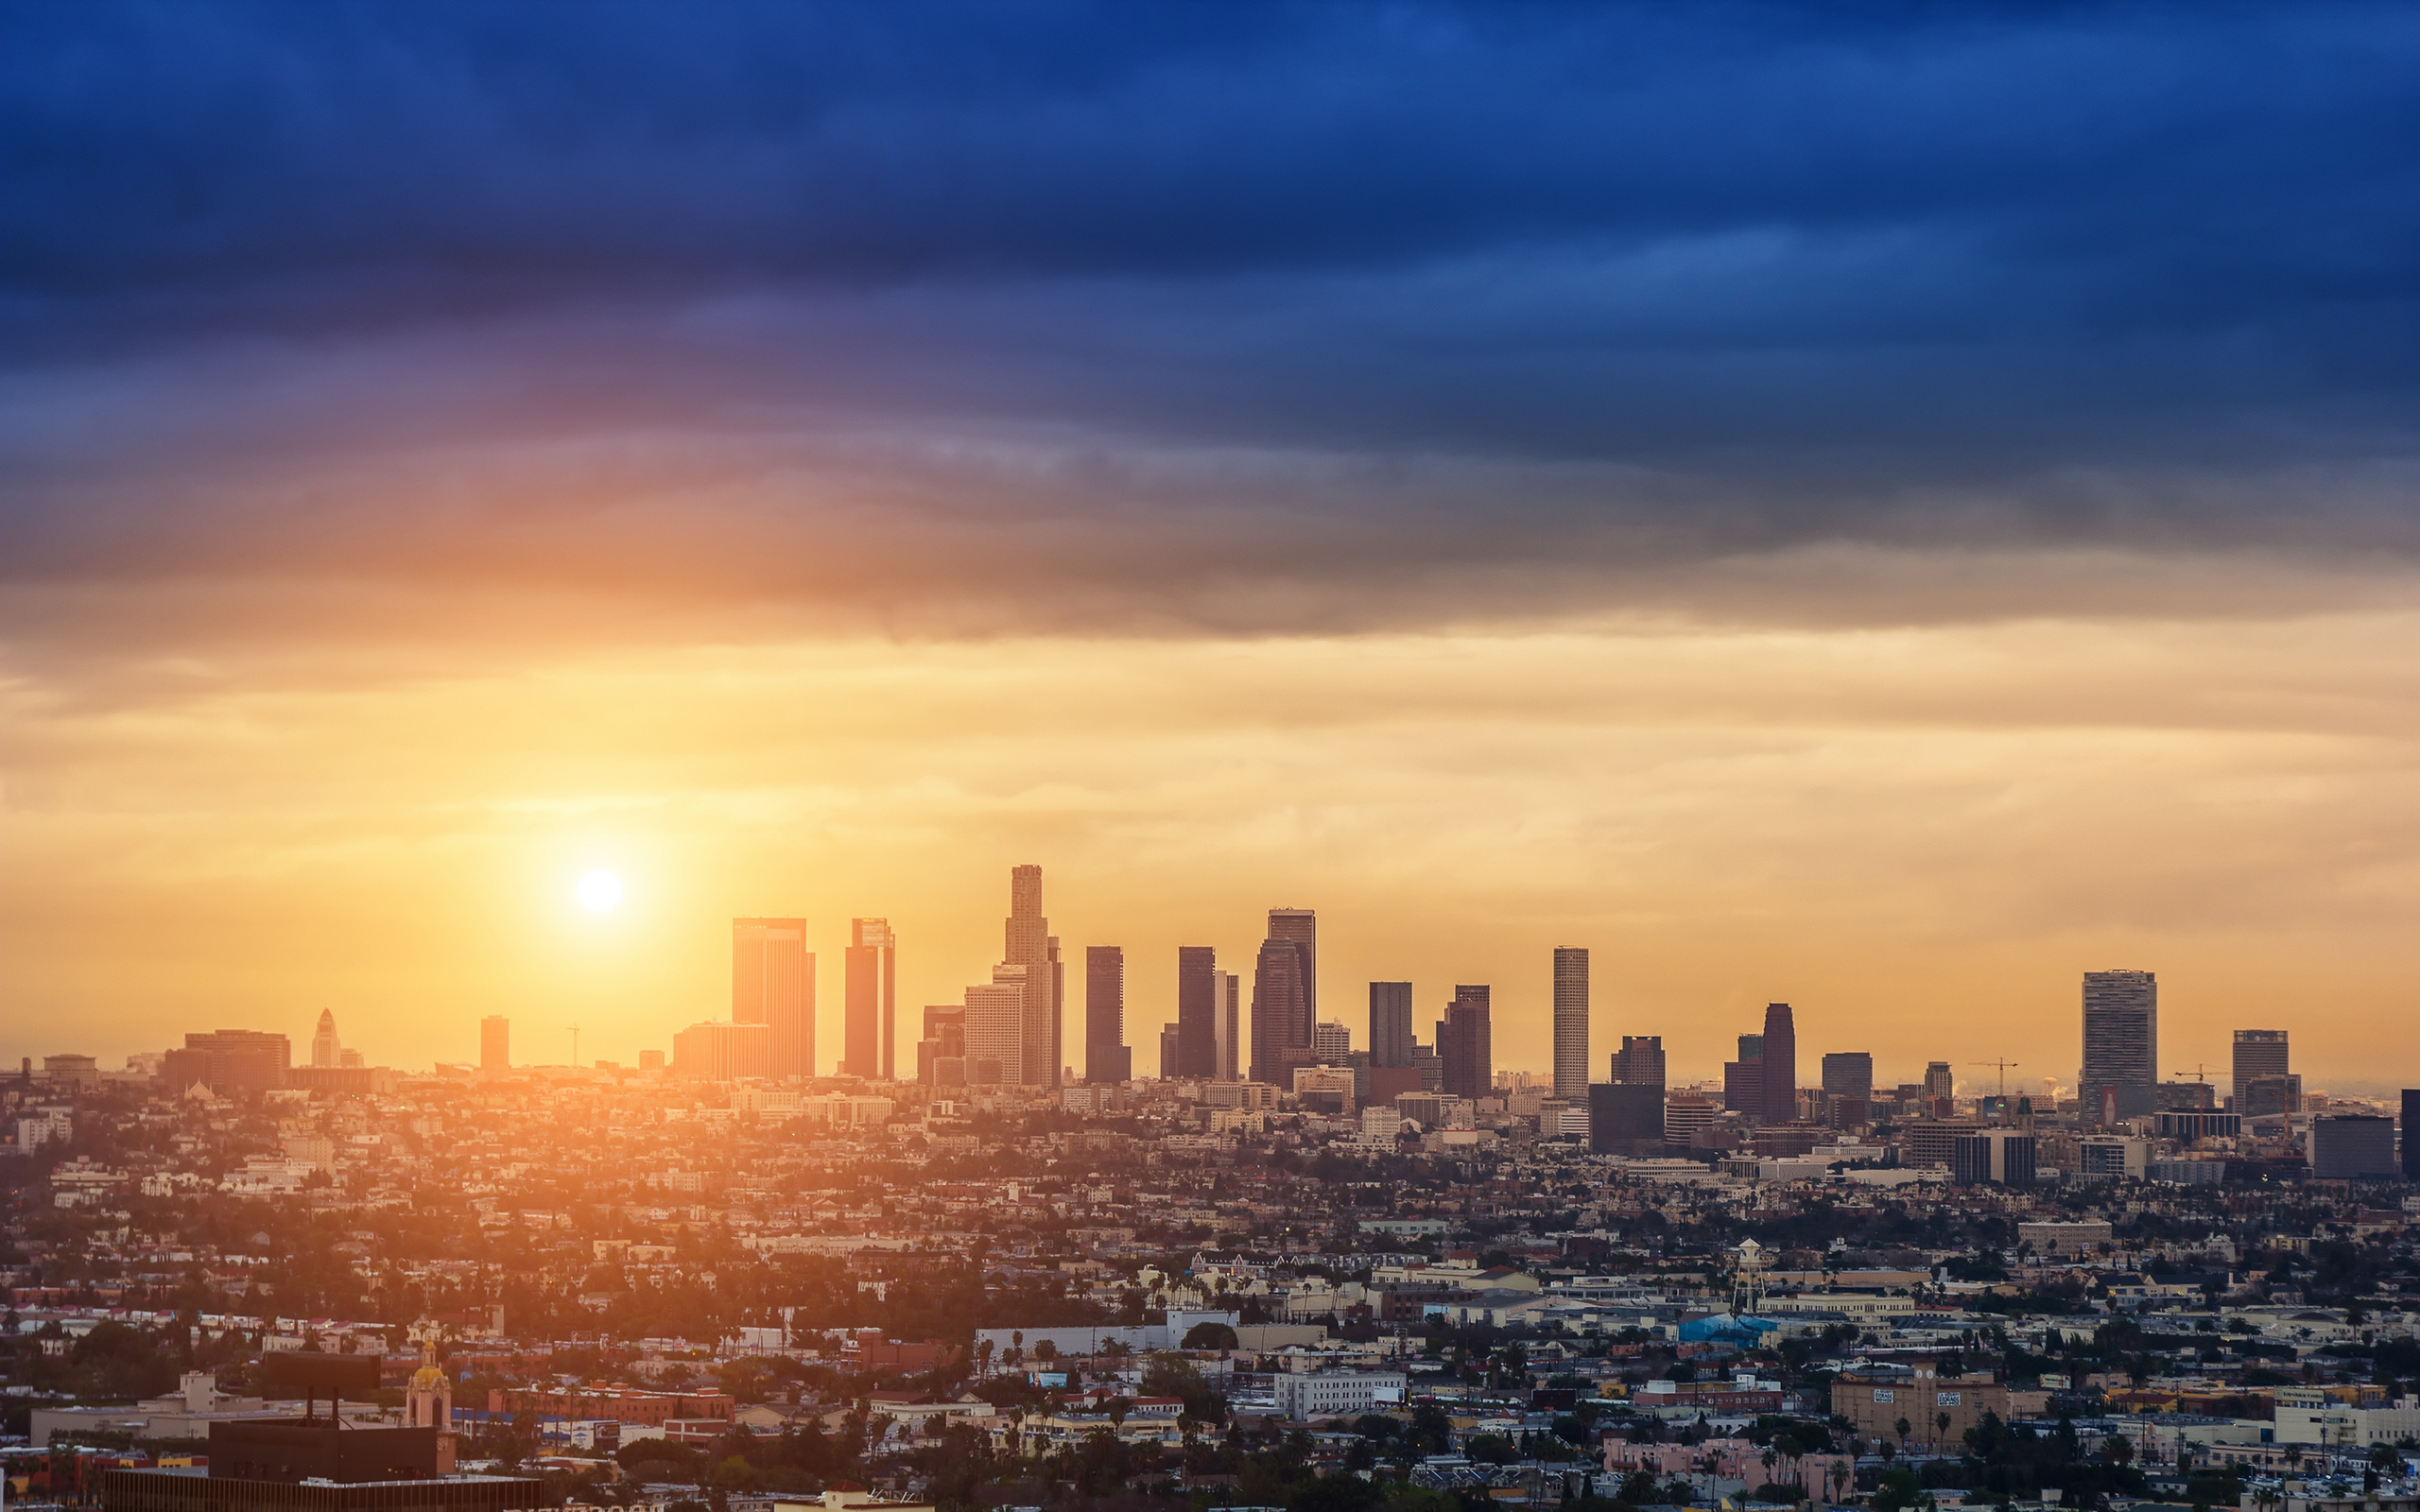 Los Angeles Wallpapers, Pictures, Images